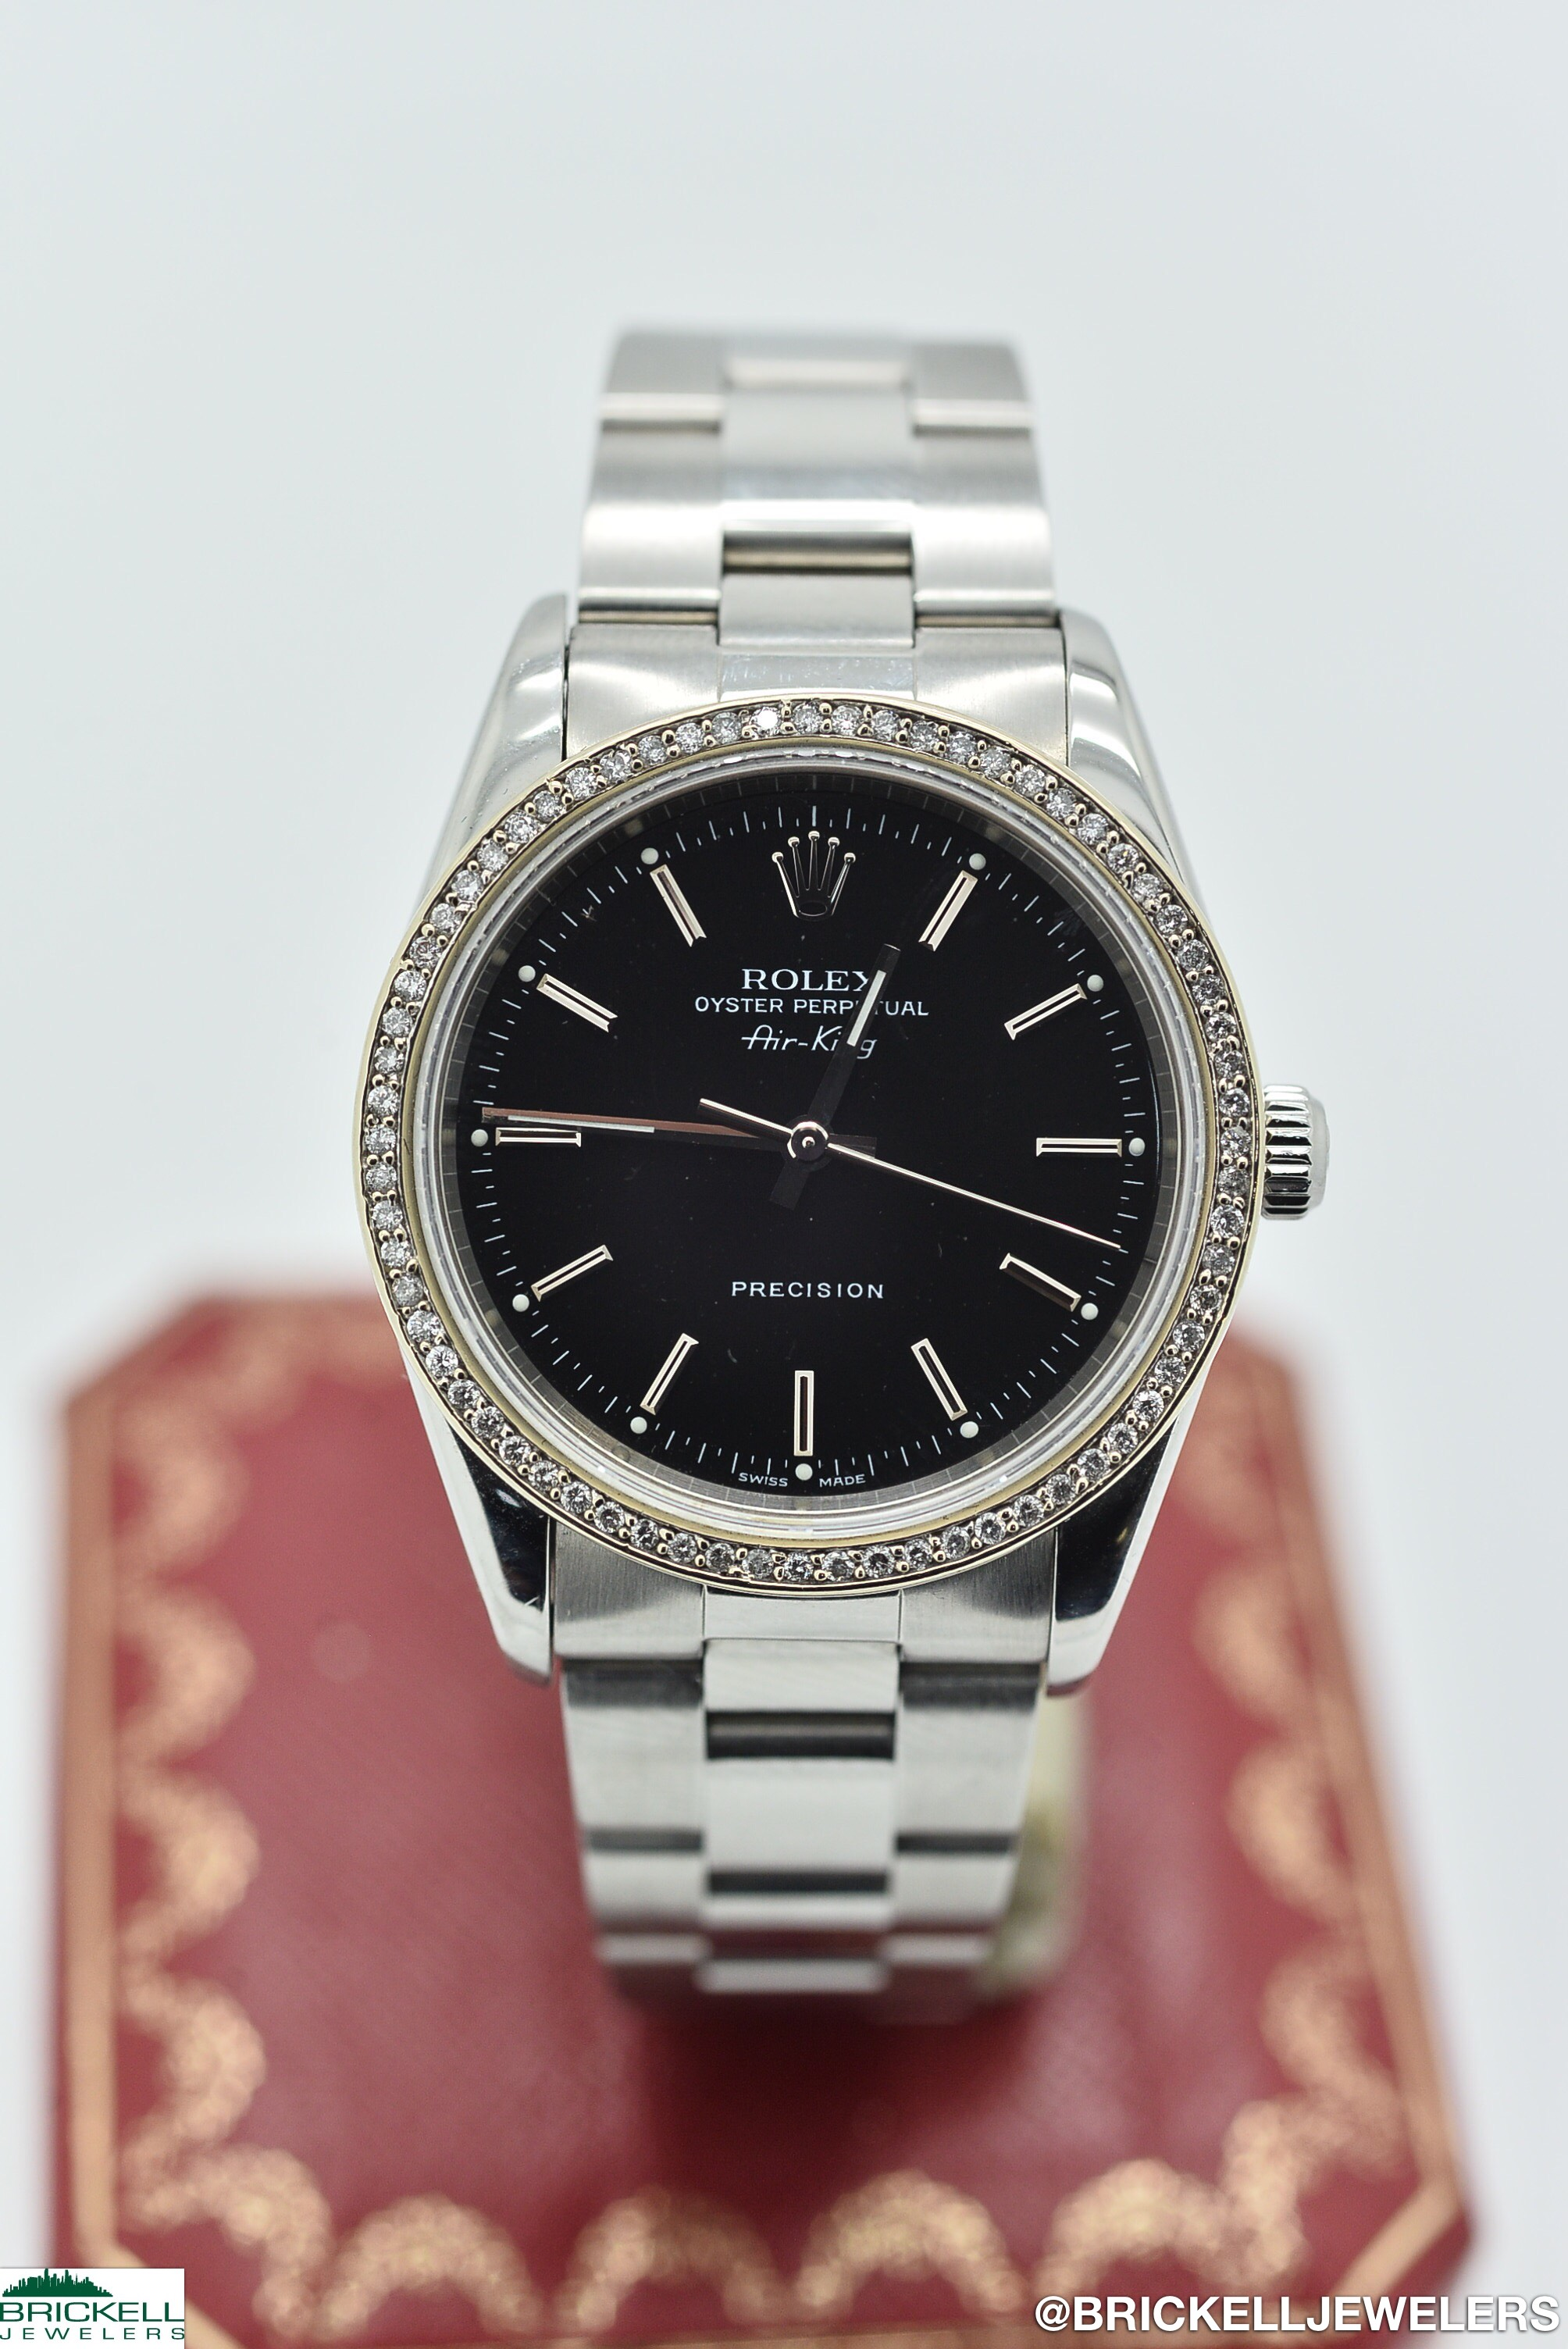 ROLEX	AIR-KING	14000M	BLACK 		DIAMOND			Stainless Steel		34MM	Mechanical (Automatic)	WATCH